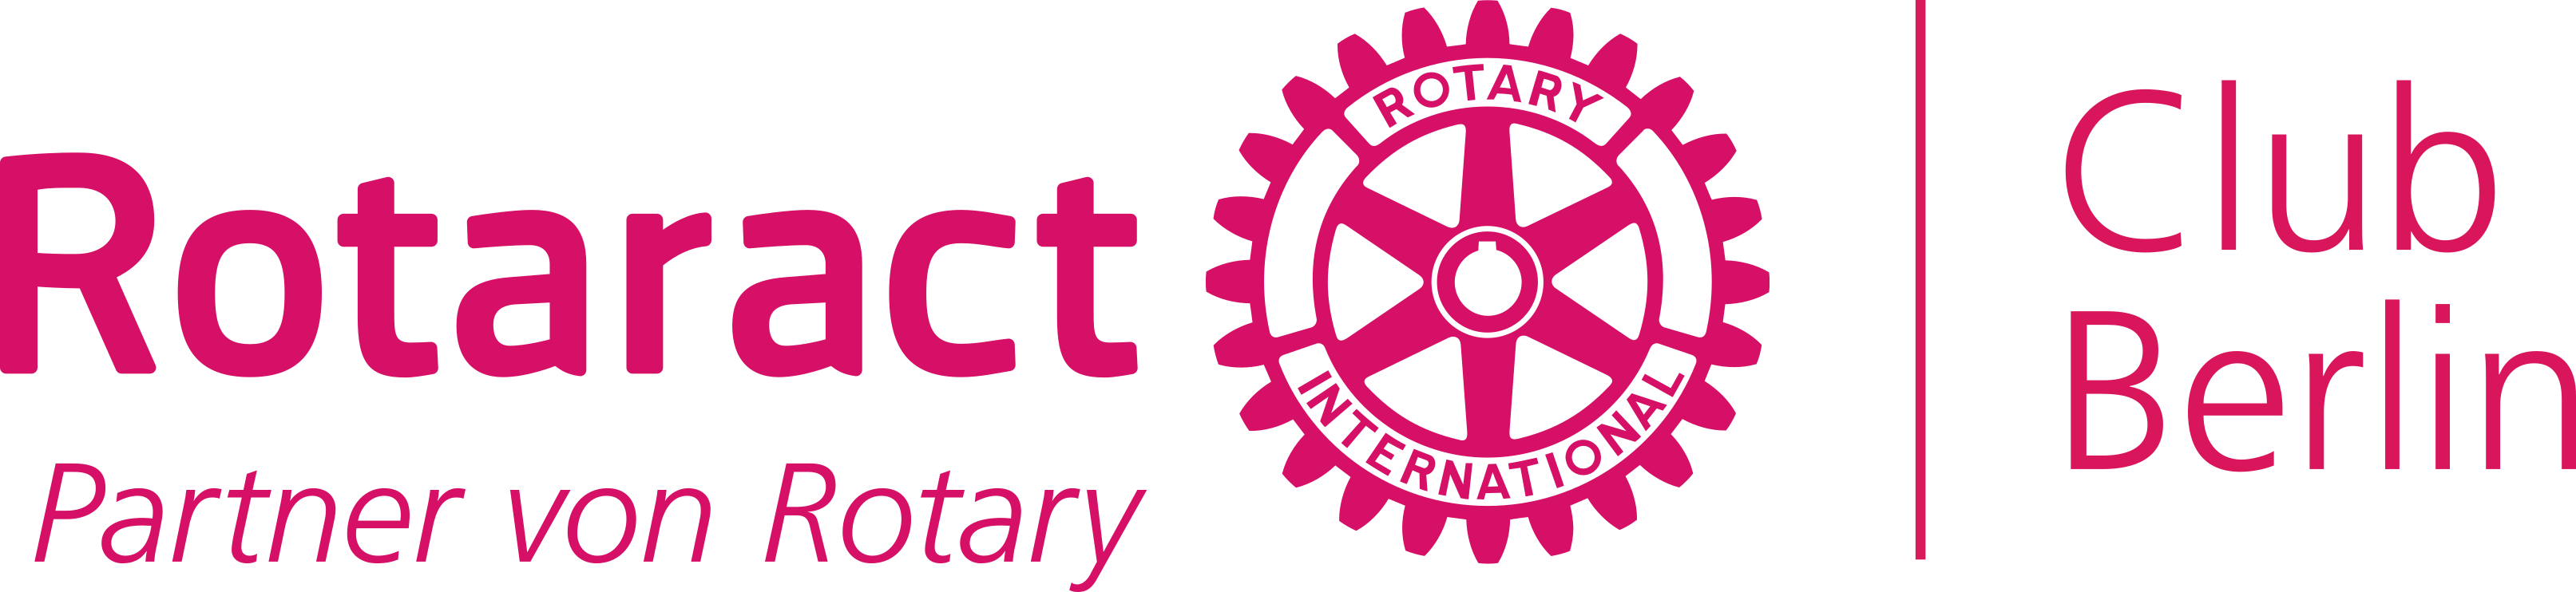 Rotaract Club Berlin